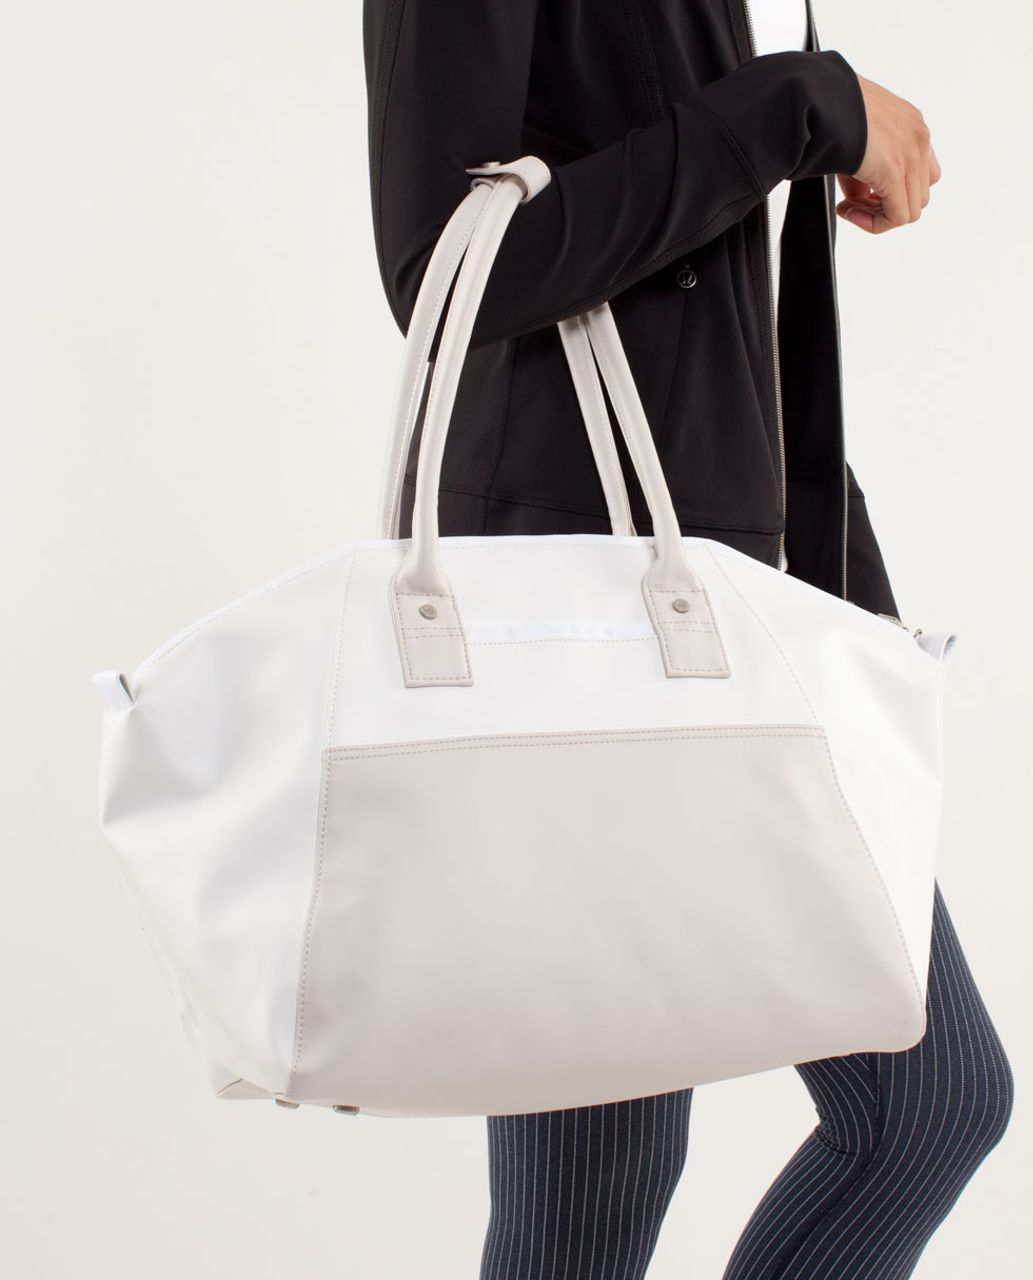 Lululemon Vinyasa To Vino Bag - White / Dune